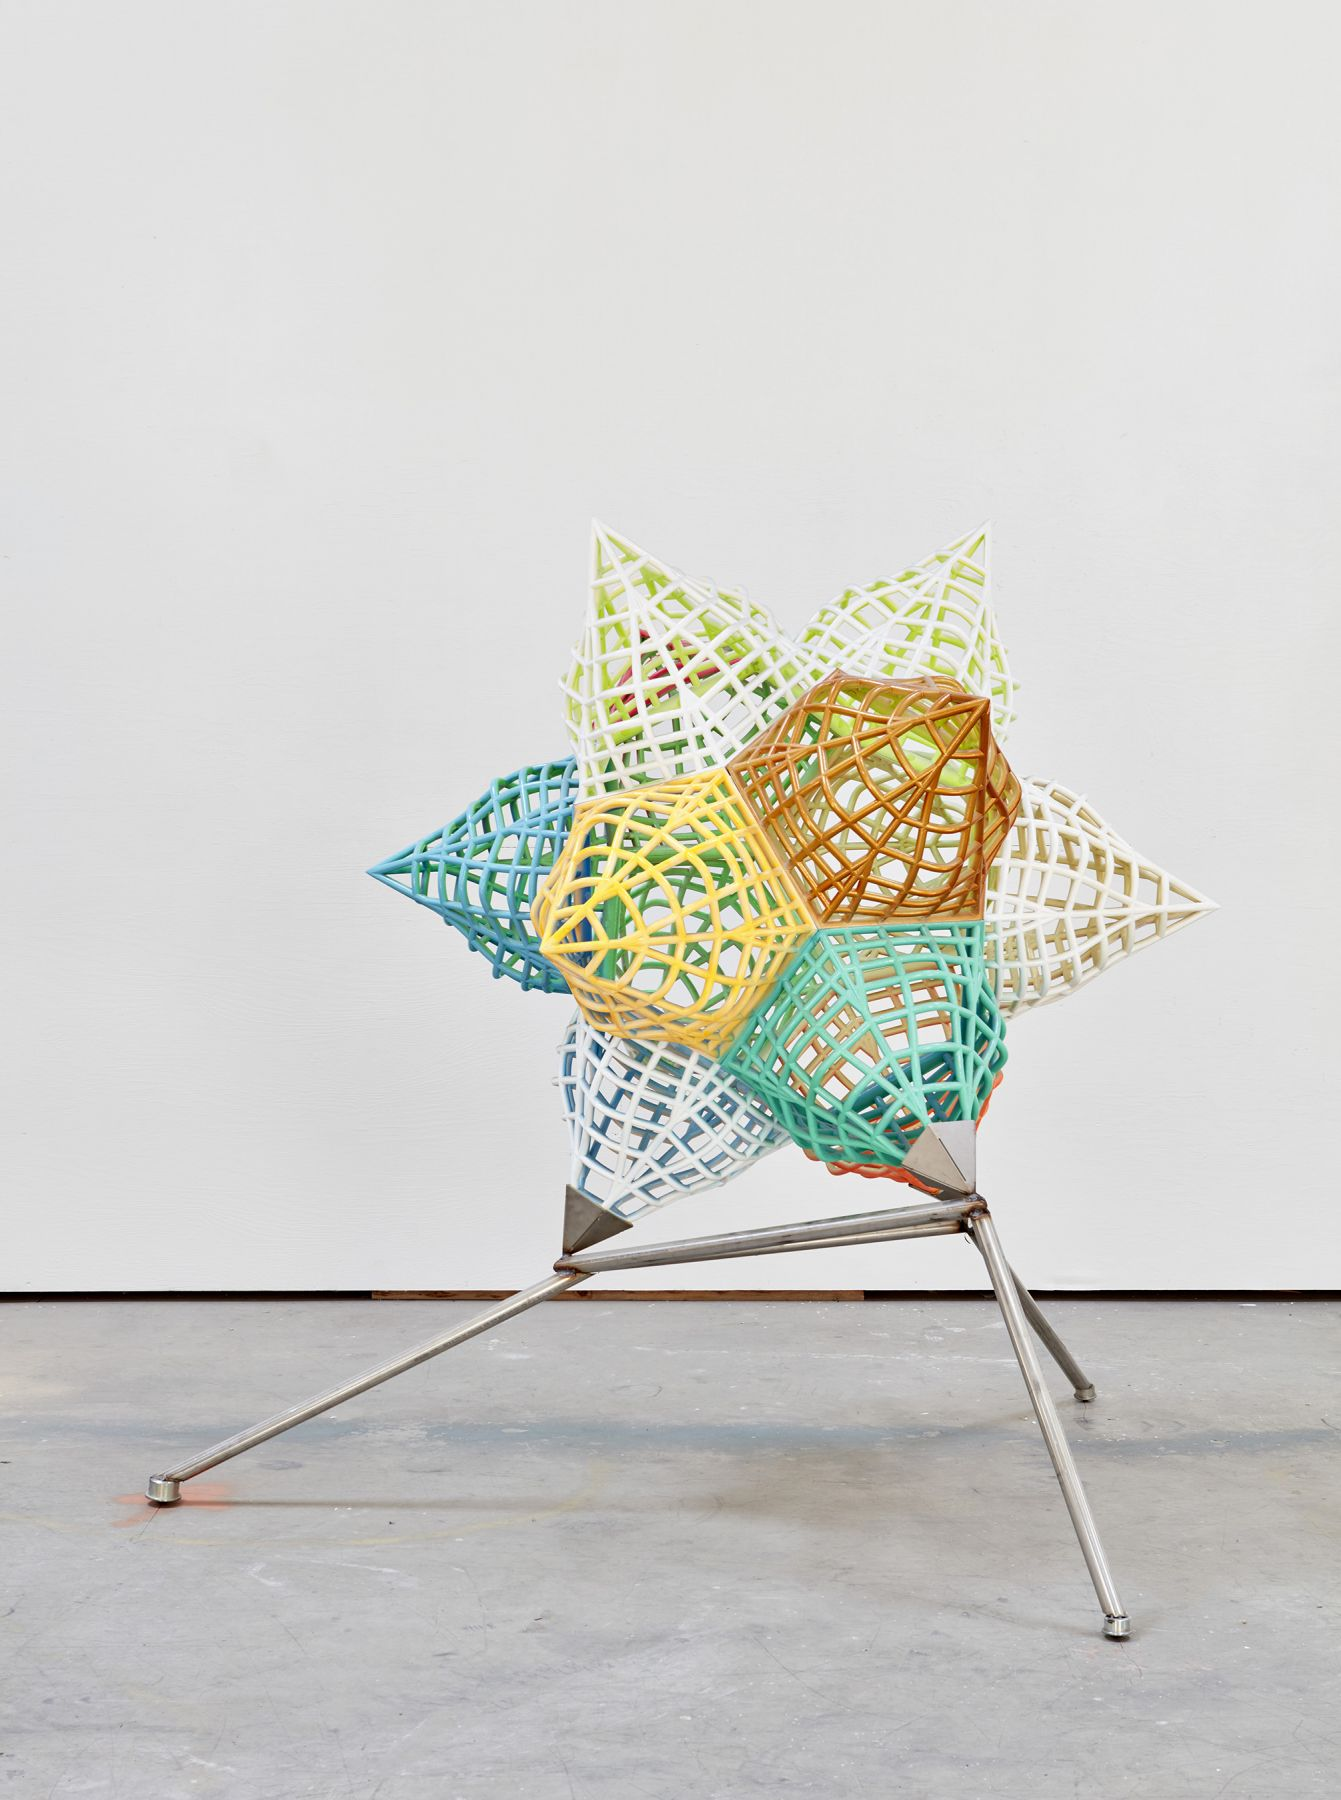 a metal 3 dimensional star in bright colors by artist frank stella and exhibited in a gallery